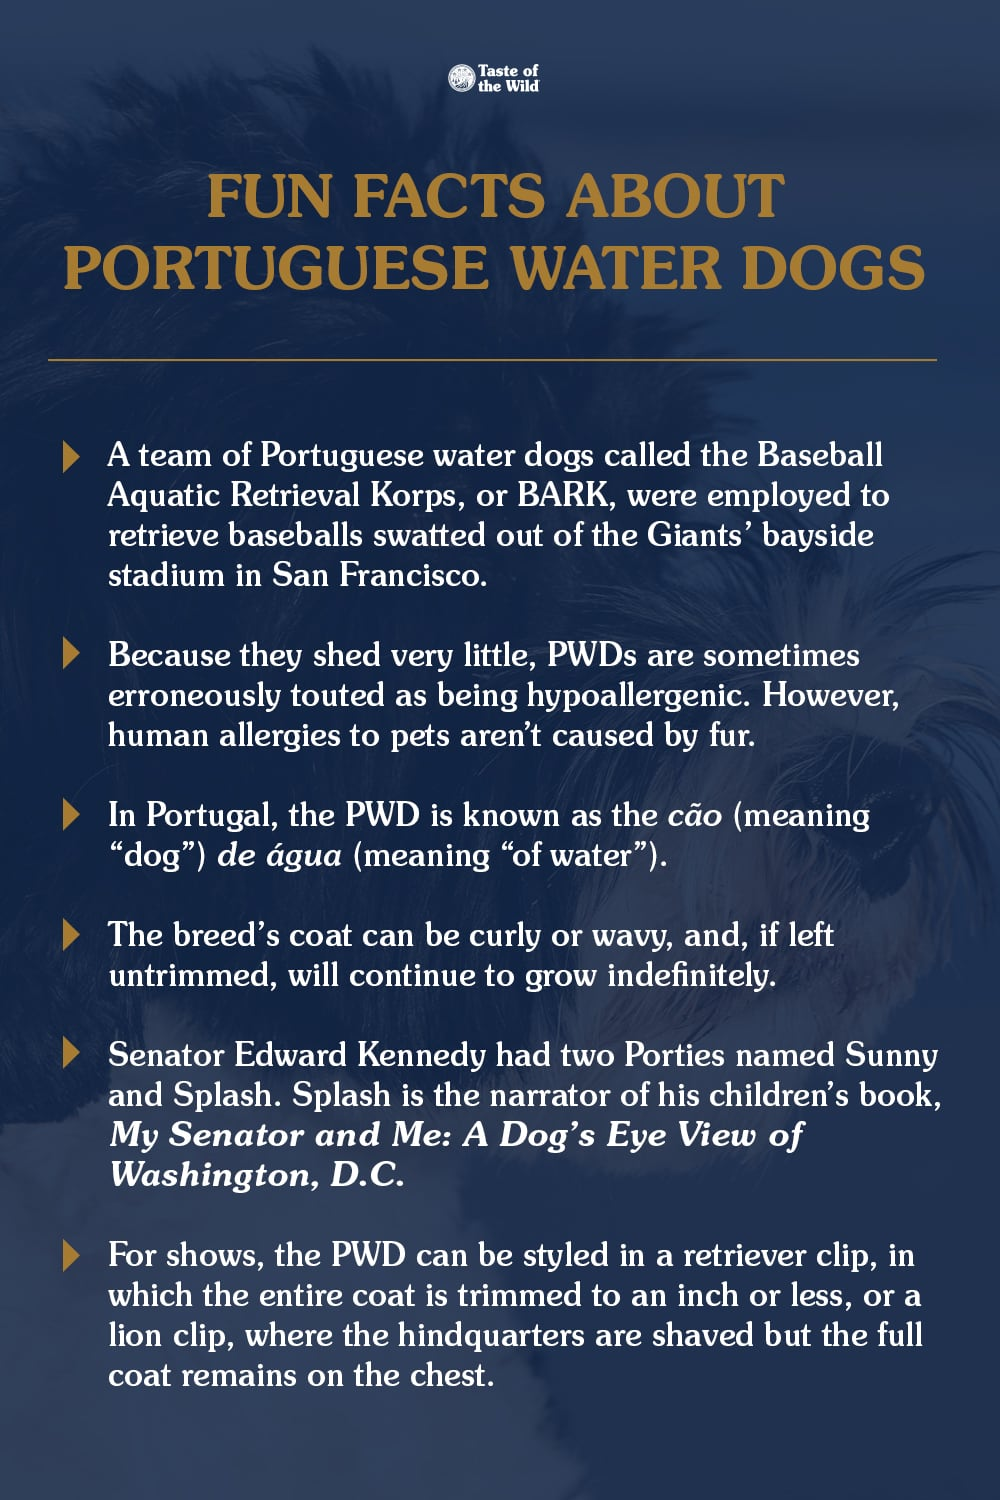 Fun Facts About Portuguese Water Dogs Graphic   Taste of the Wild